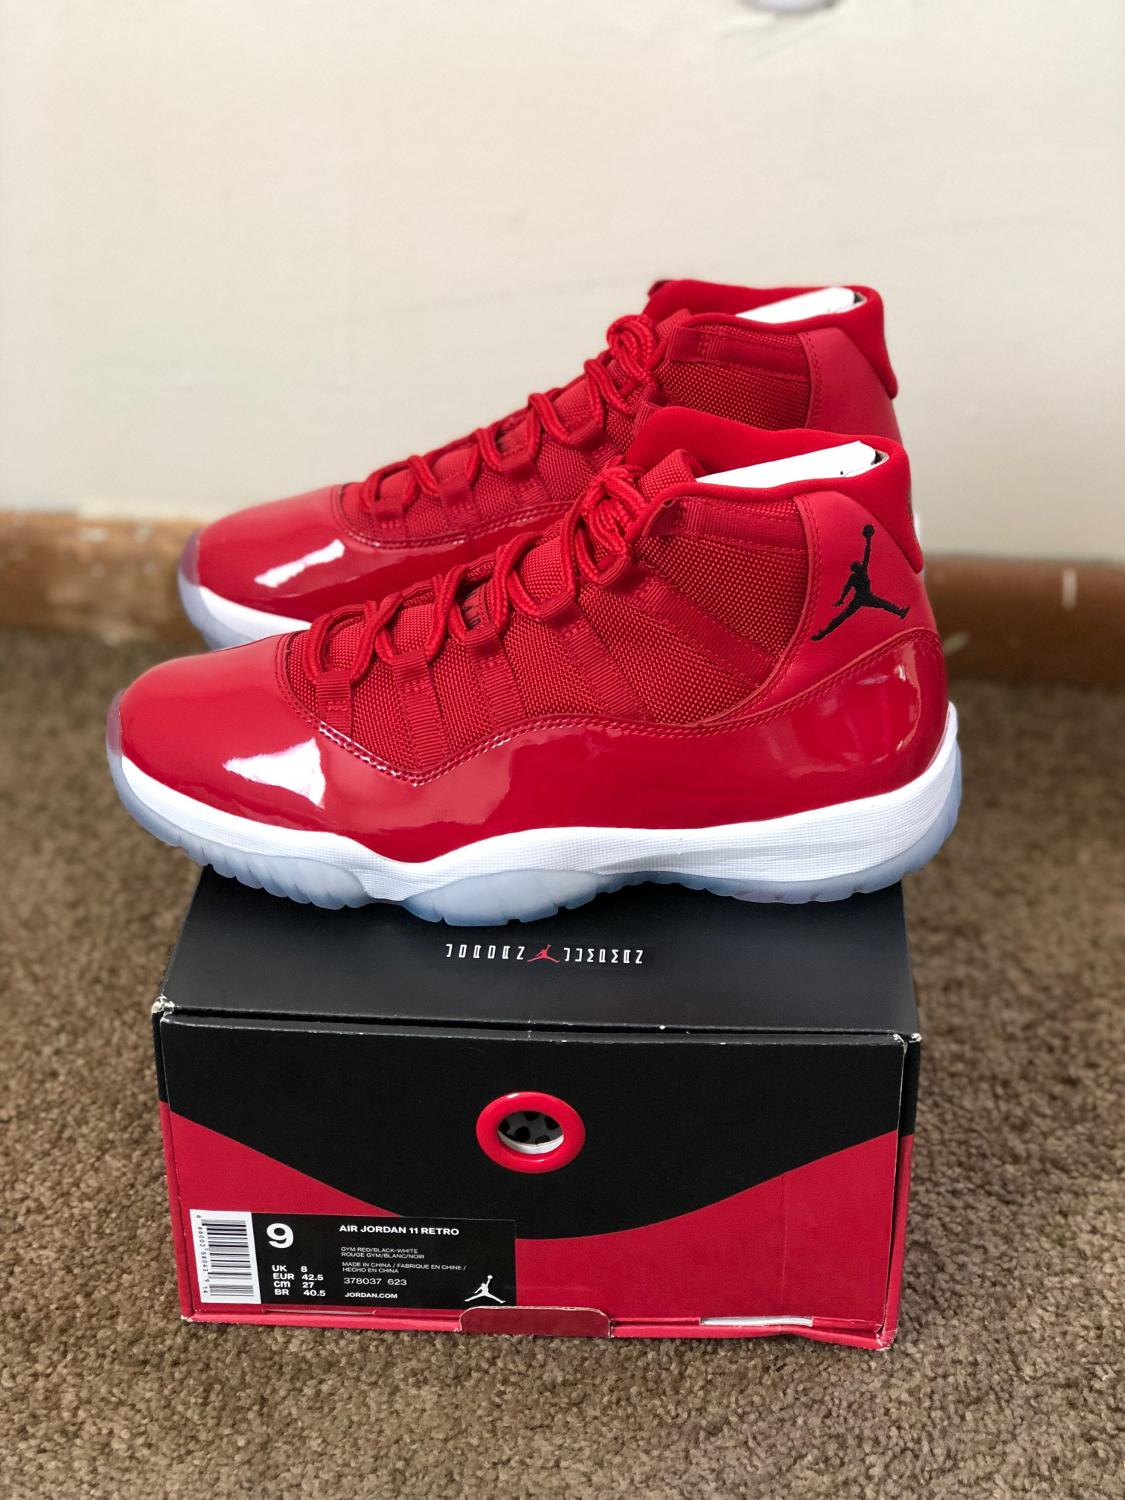 60a266deac8 Best Air Jordan Retro 11's Size 9 $350 for sale in Columbus, Ohio for 2019